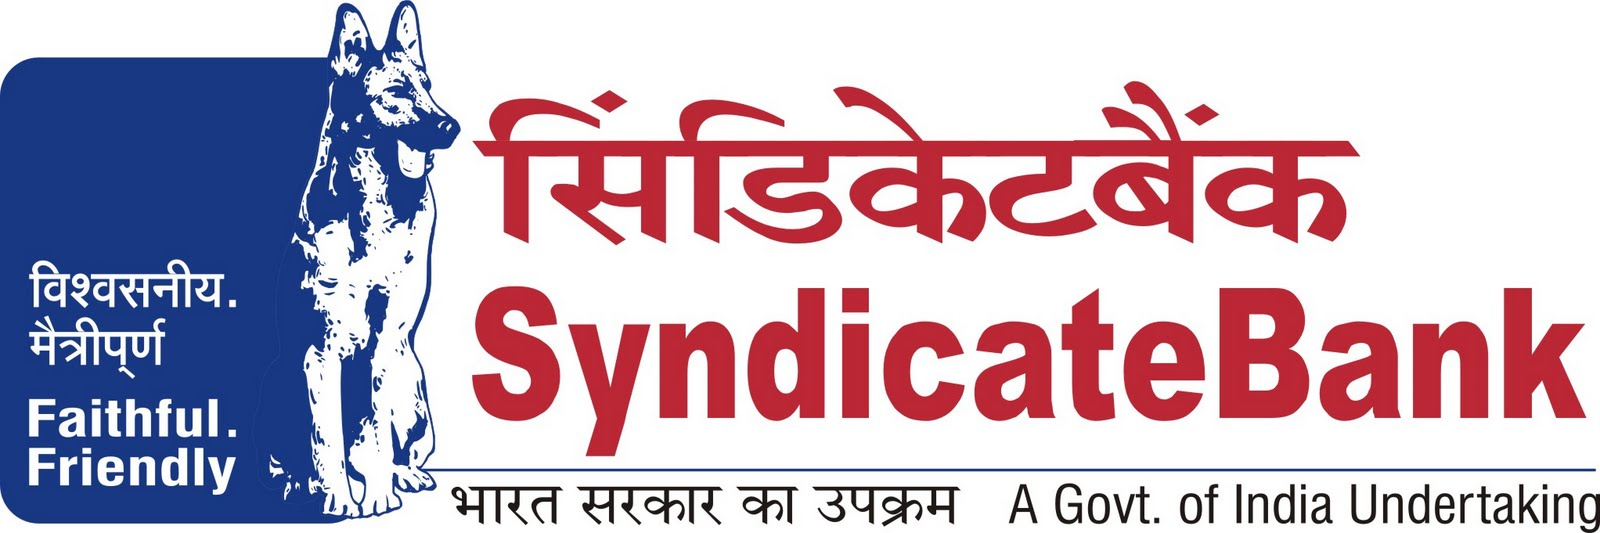 Syndicate Bank Recruitment 2012 Specialist Officer Vacancies